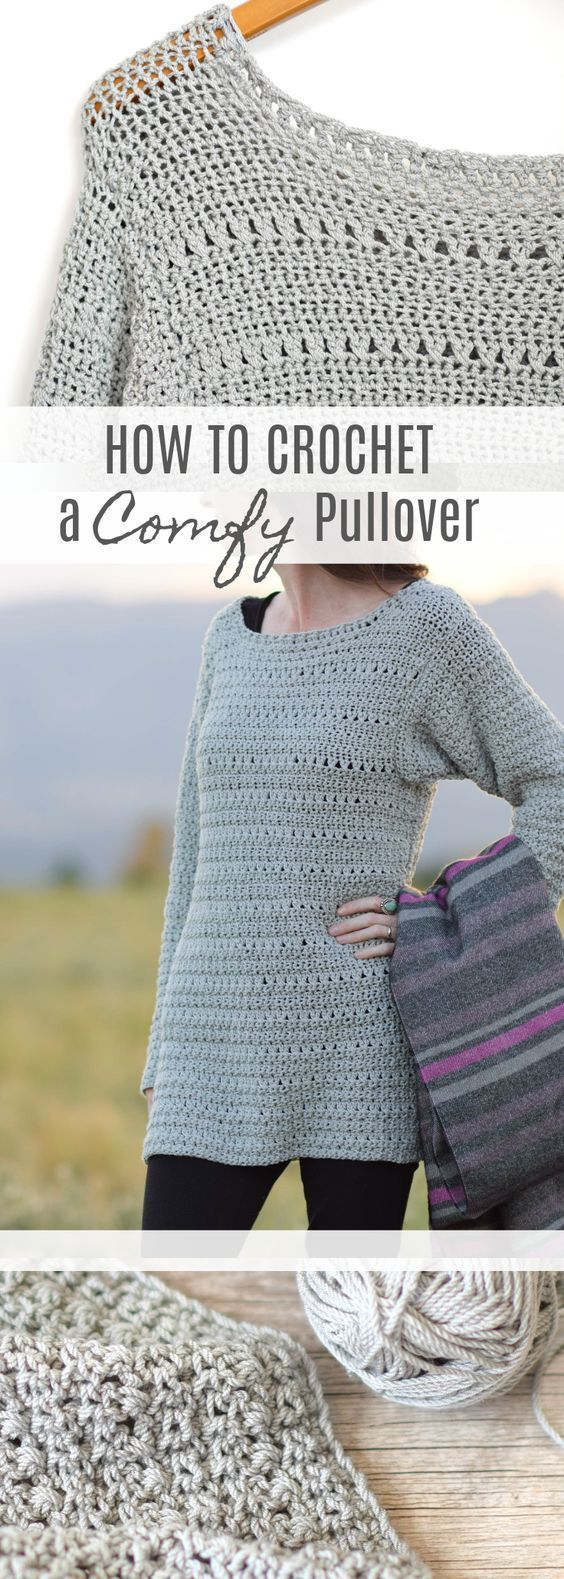 Crochet Sweater free patterns - Womens Clothing #crochetsweaterpatternwomen